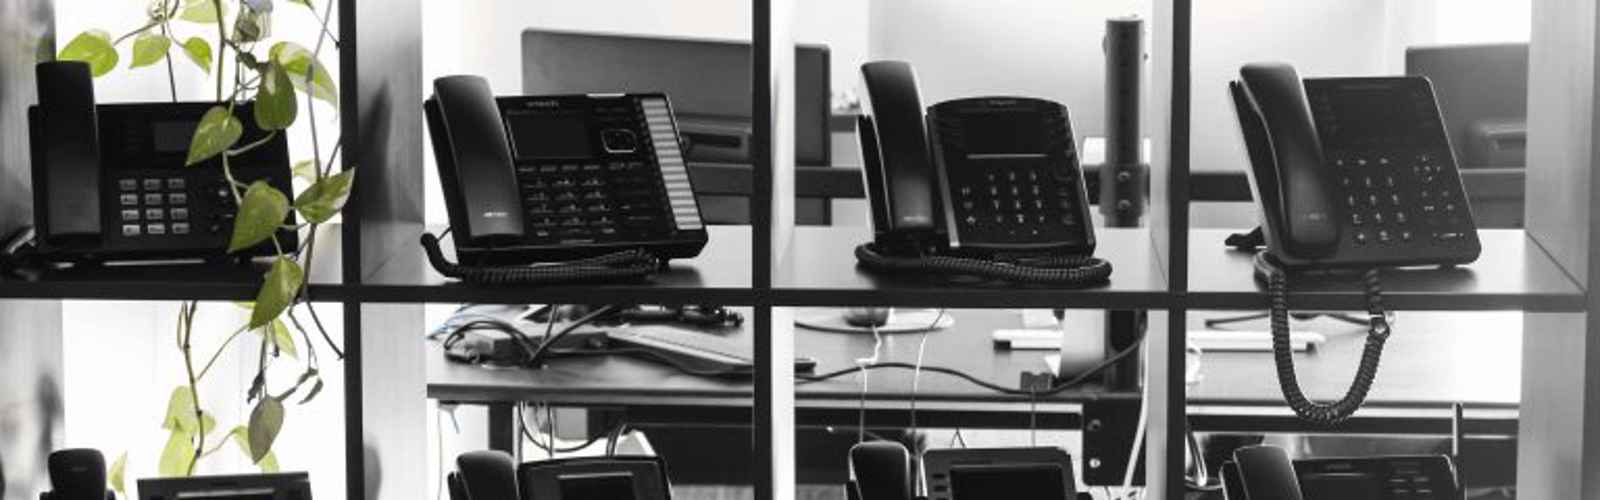 3 Small Business IP Phones Under $75